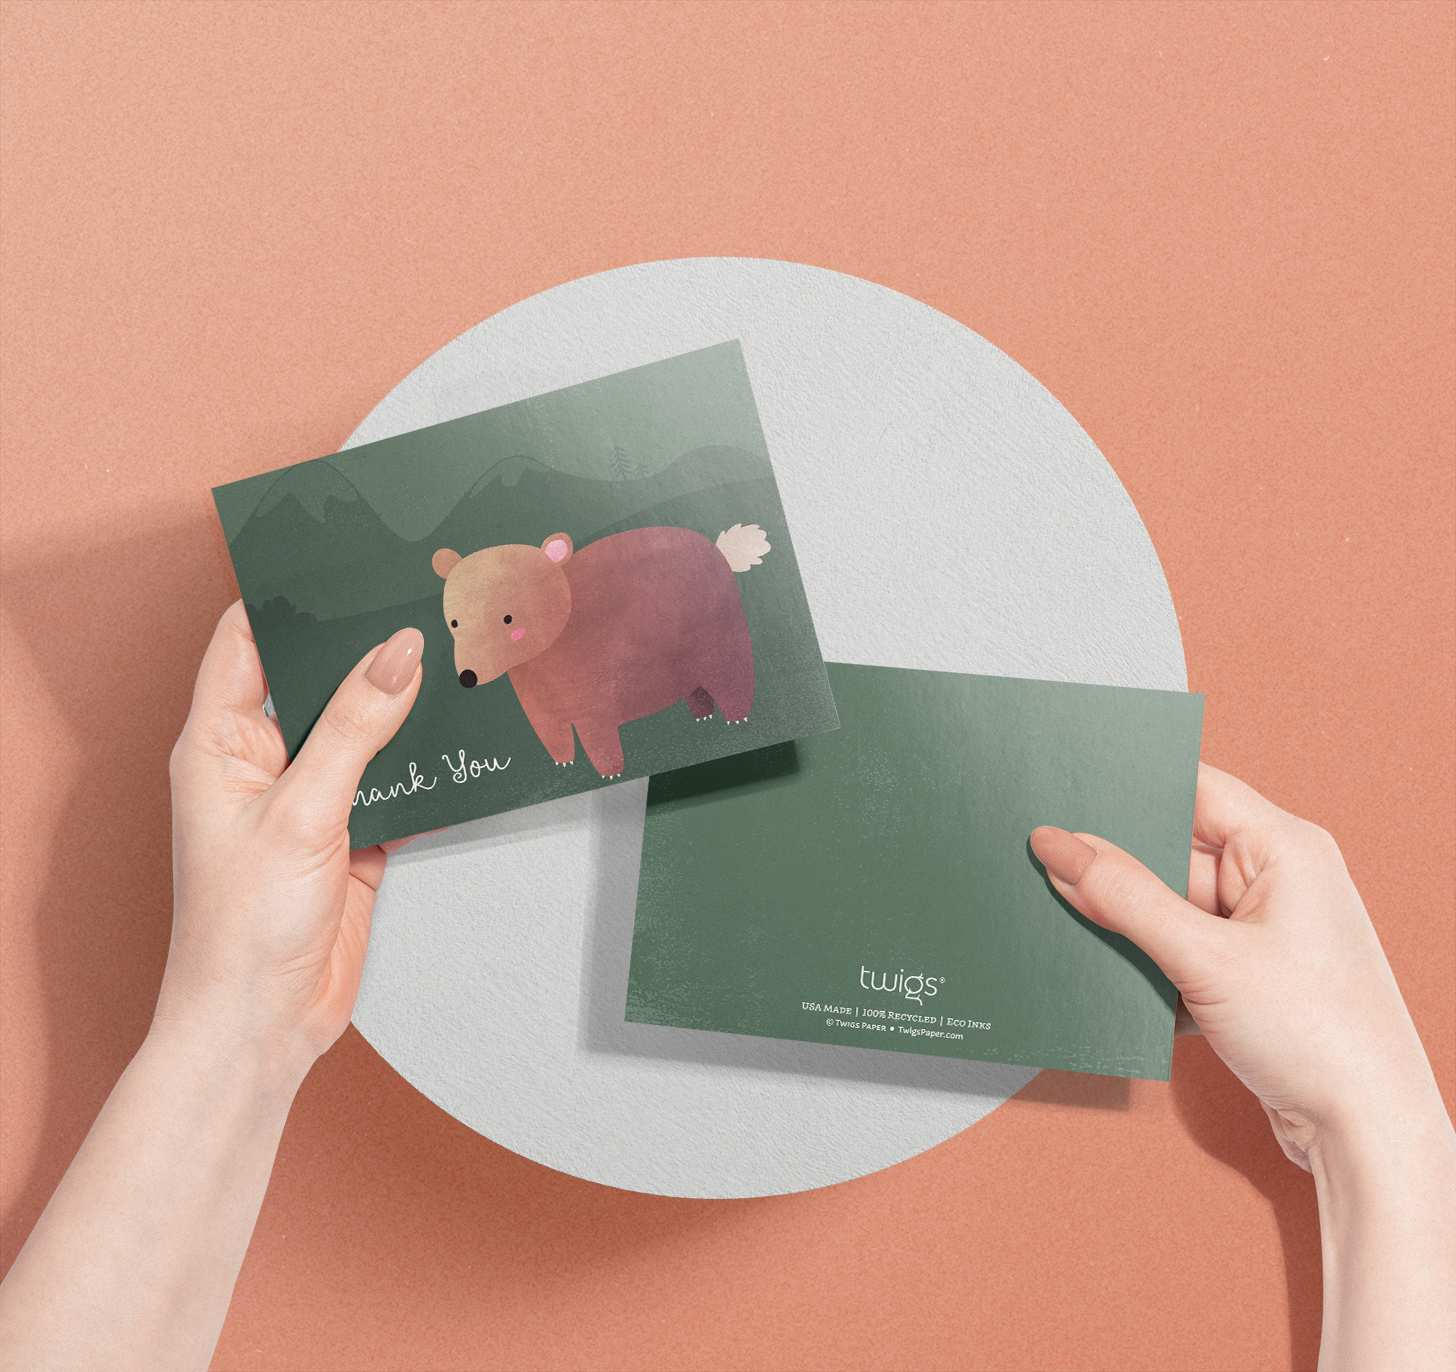 Woman's hands holding card with cute brown bear on green mountain design